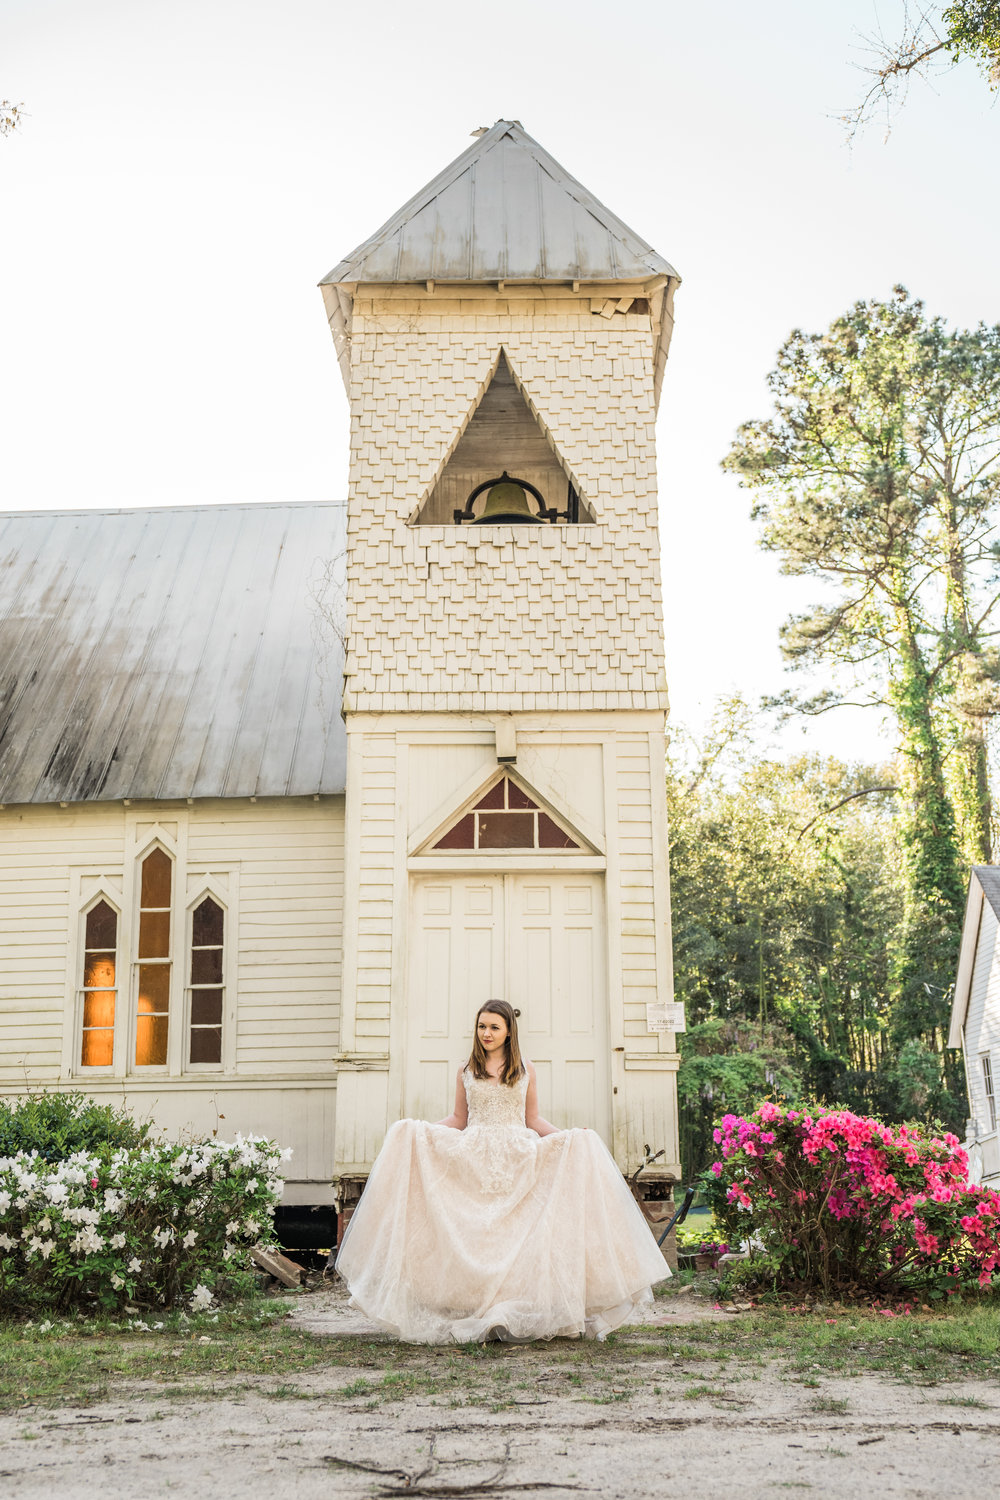 ivory-and-beau-bridal-boutique-old-church-styled-shoot-bud-johnson-photography-vintage-wedding-details-vintage-savannah-wedding-4.jpg